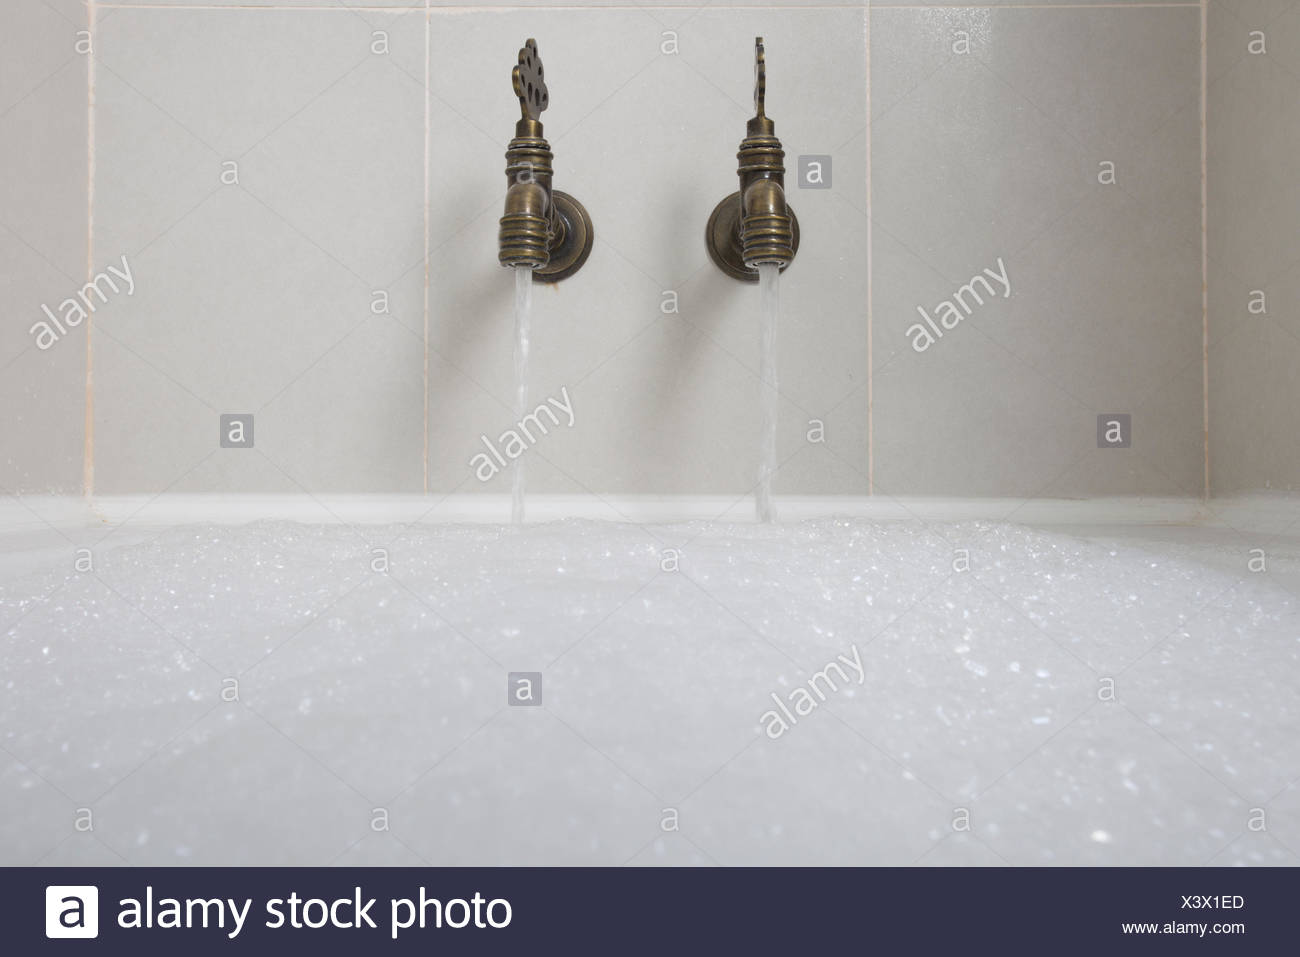 Vintage Bath Taps Stock Photos & Vintage Bath Taps Stock Images - Alamy